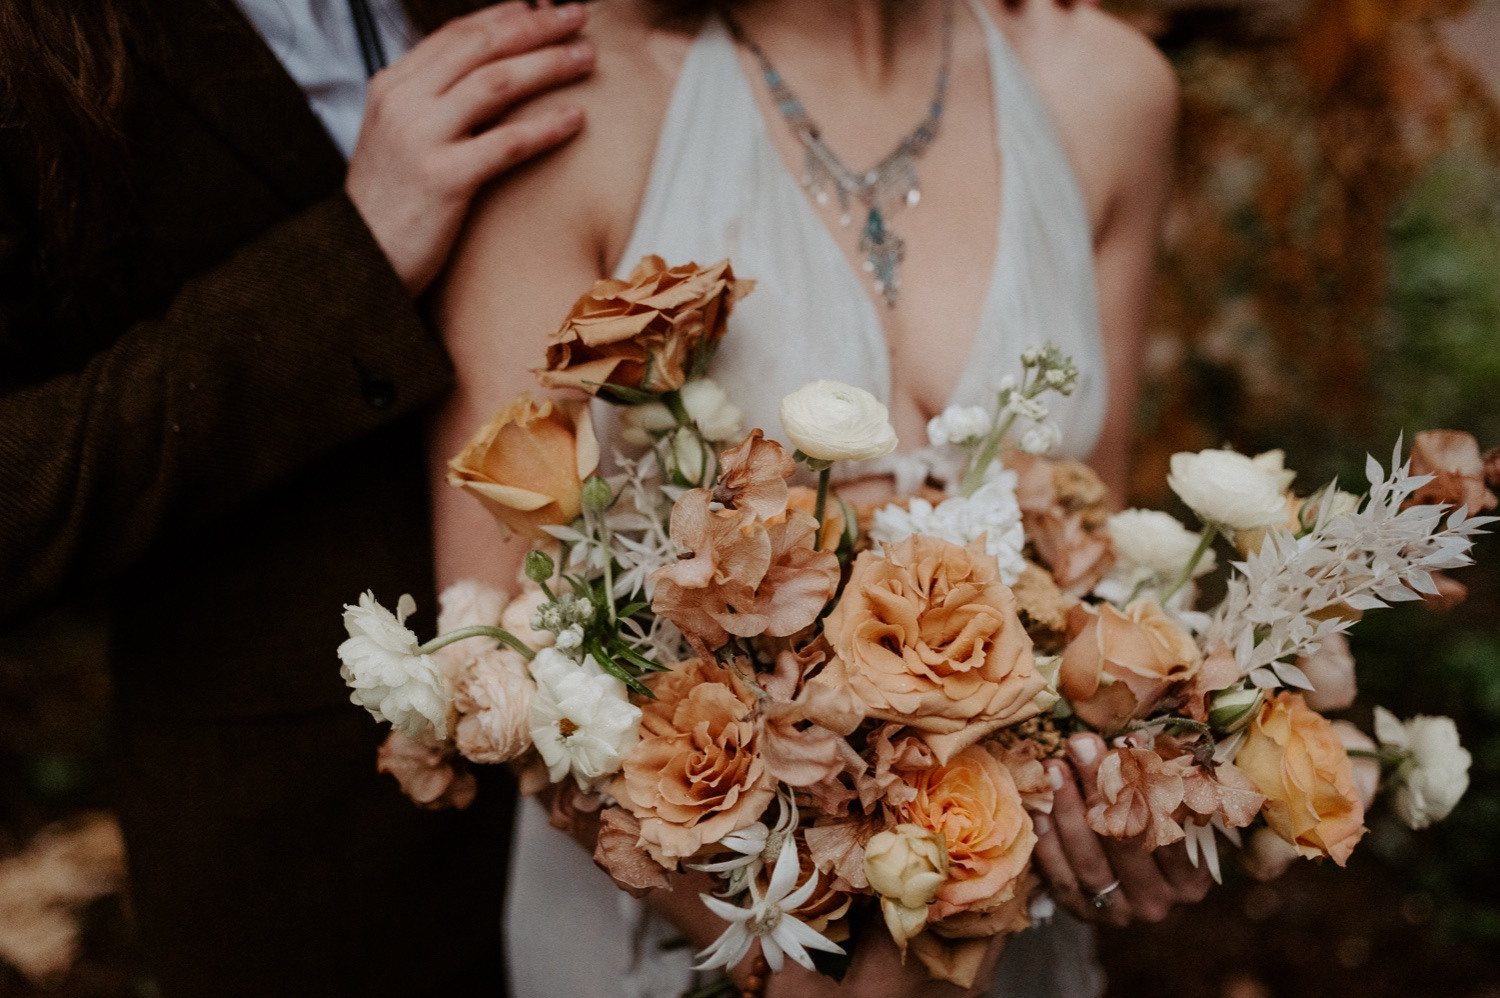 The Woodlands House Sandy Oregon Elopement Portland Elopement Photographer PNW Adventurous Elopement Anais Possamai Photography 022